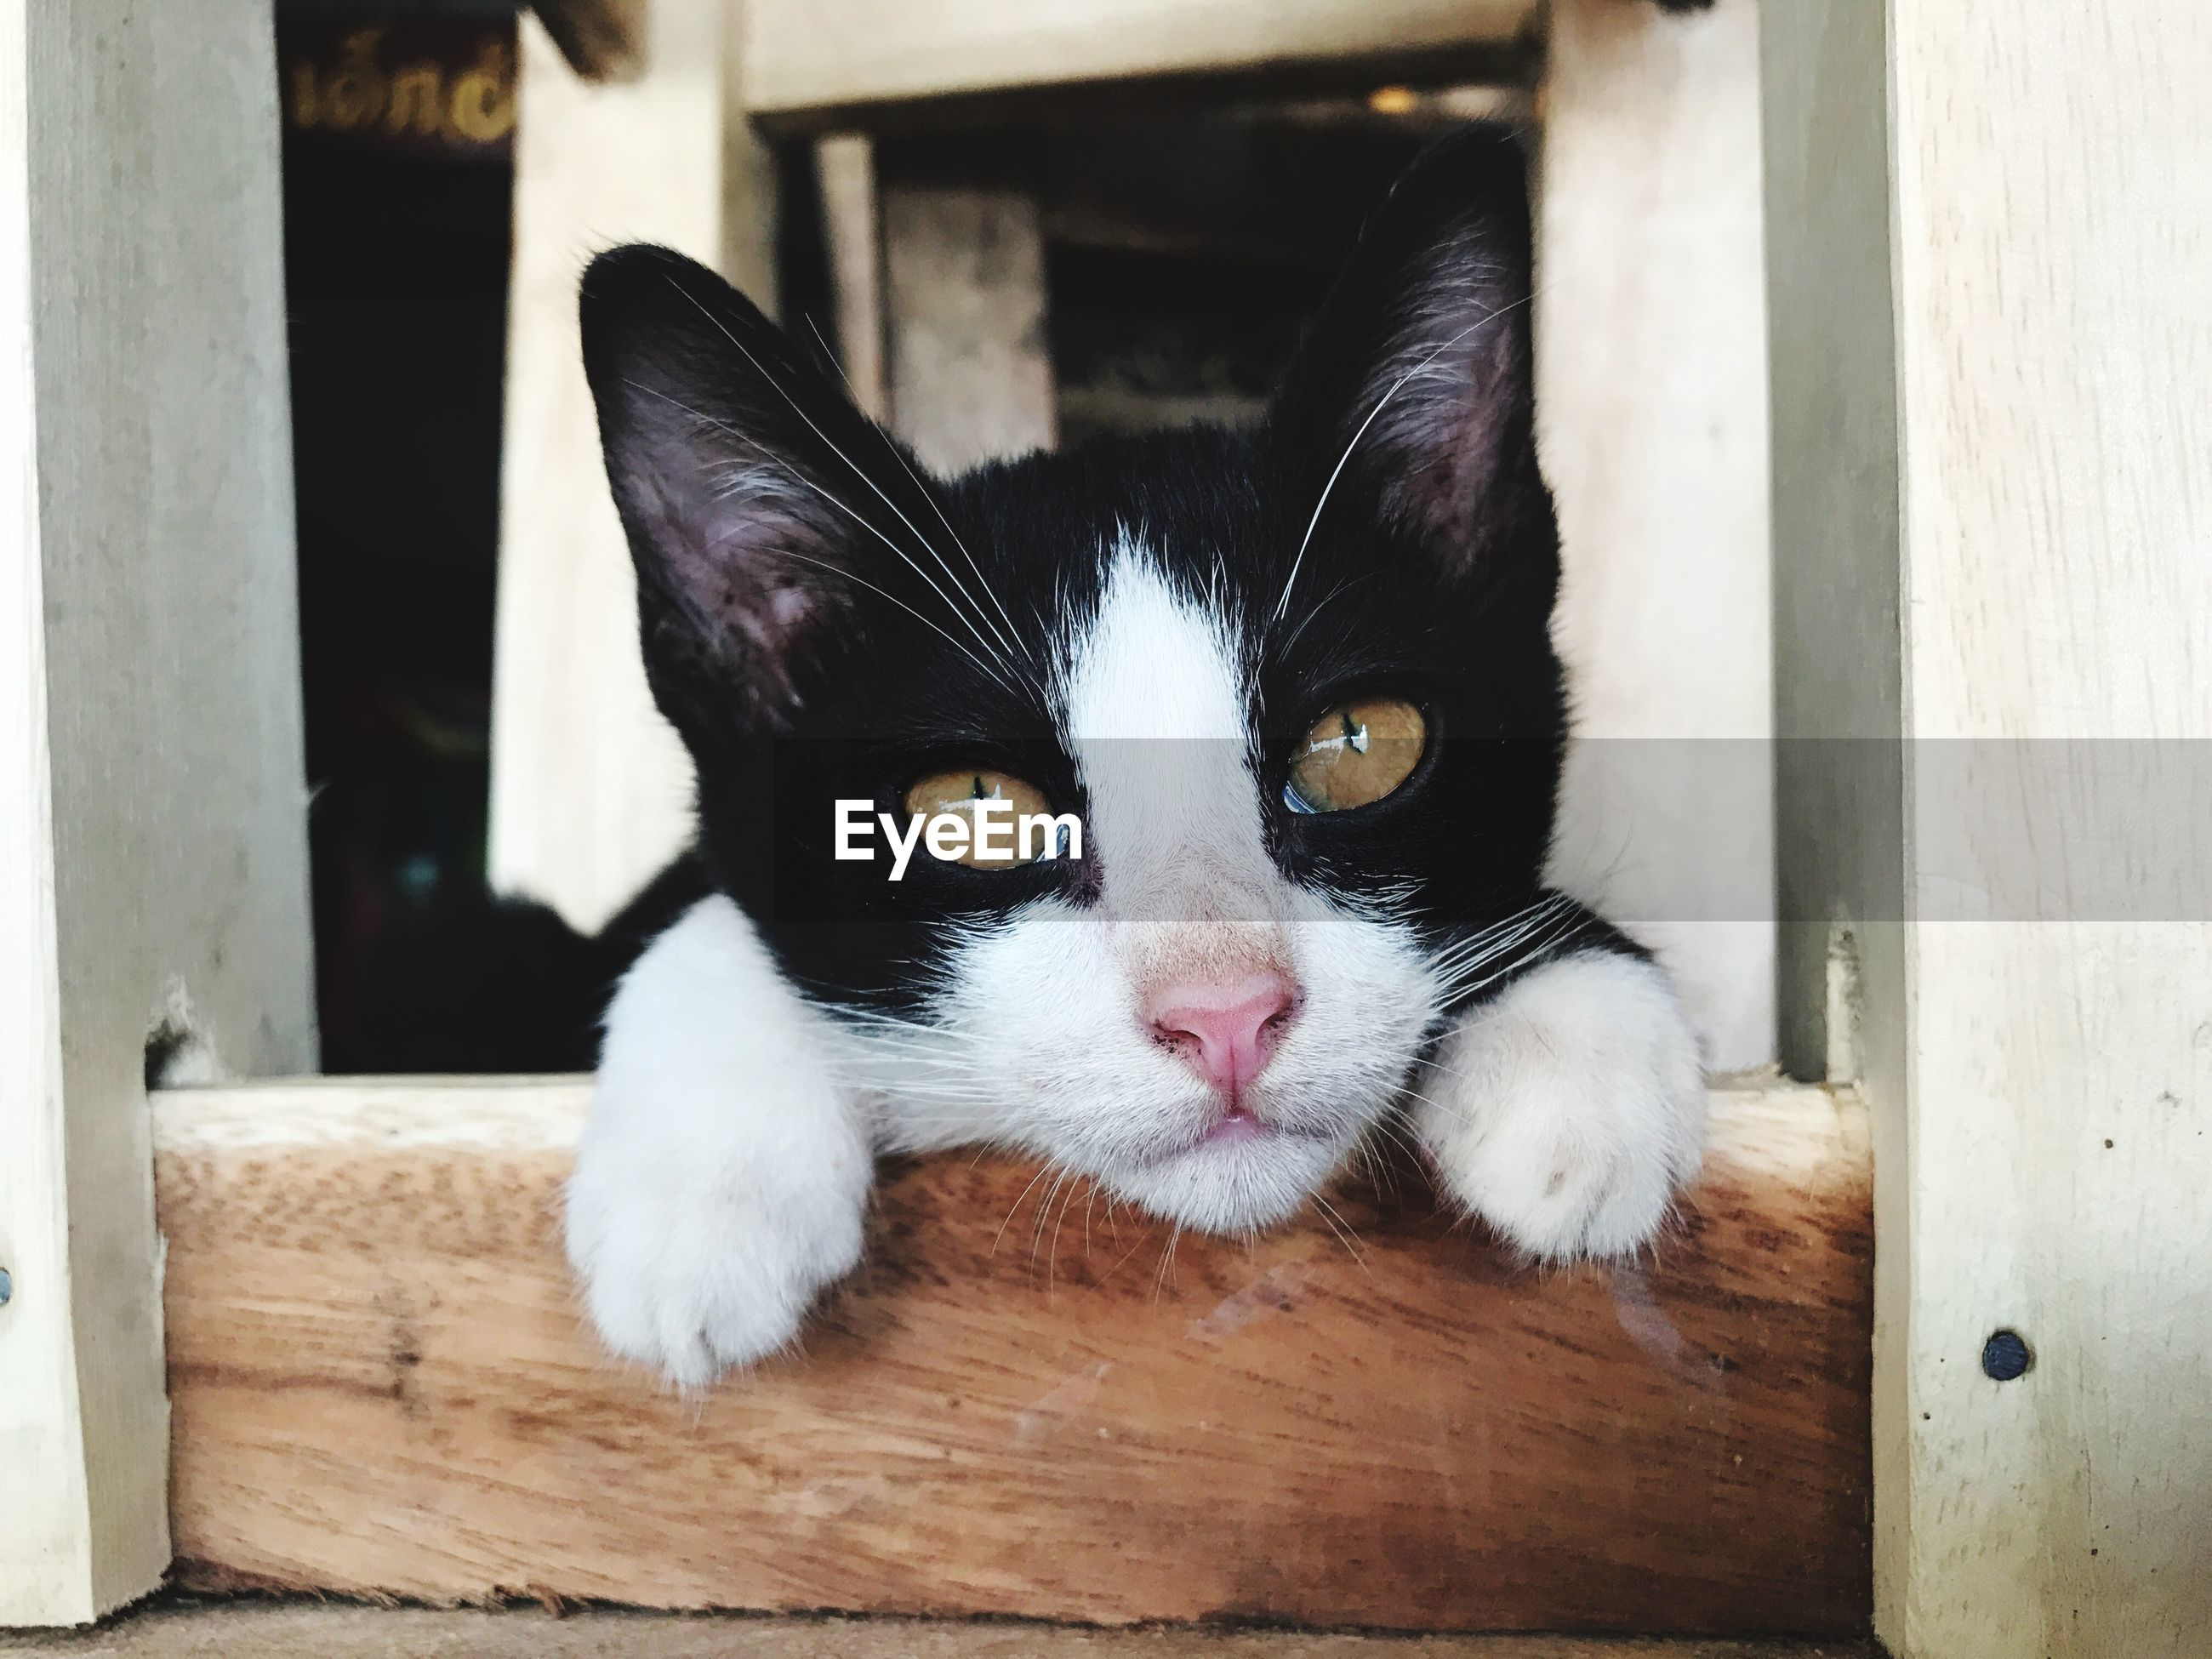 CLOSE-UP PORTRAIT OF CAT WITH EYES CLOSED ON WOODEN FLOOR